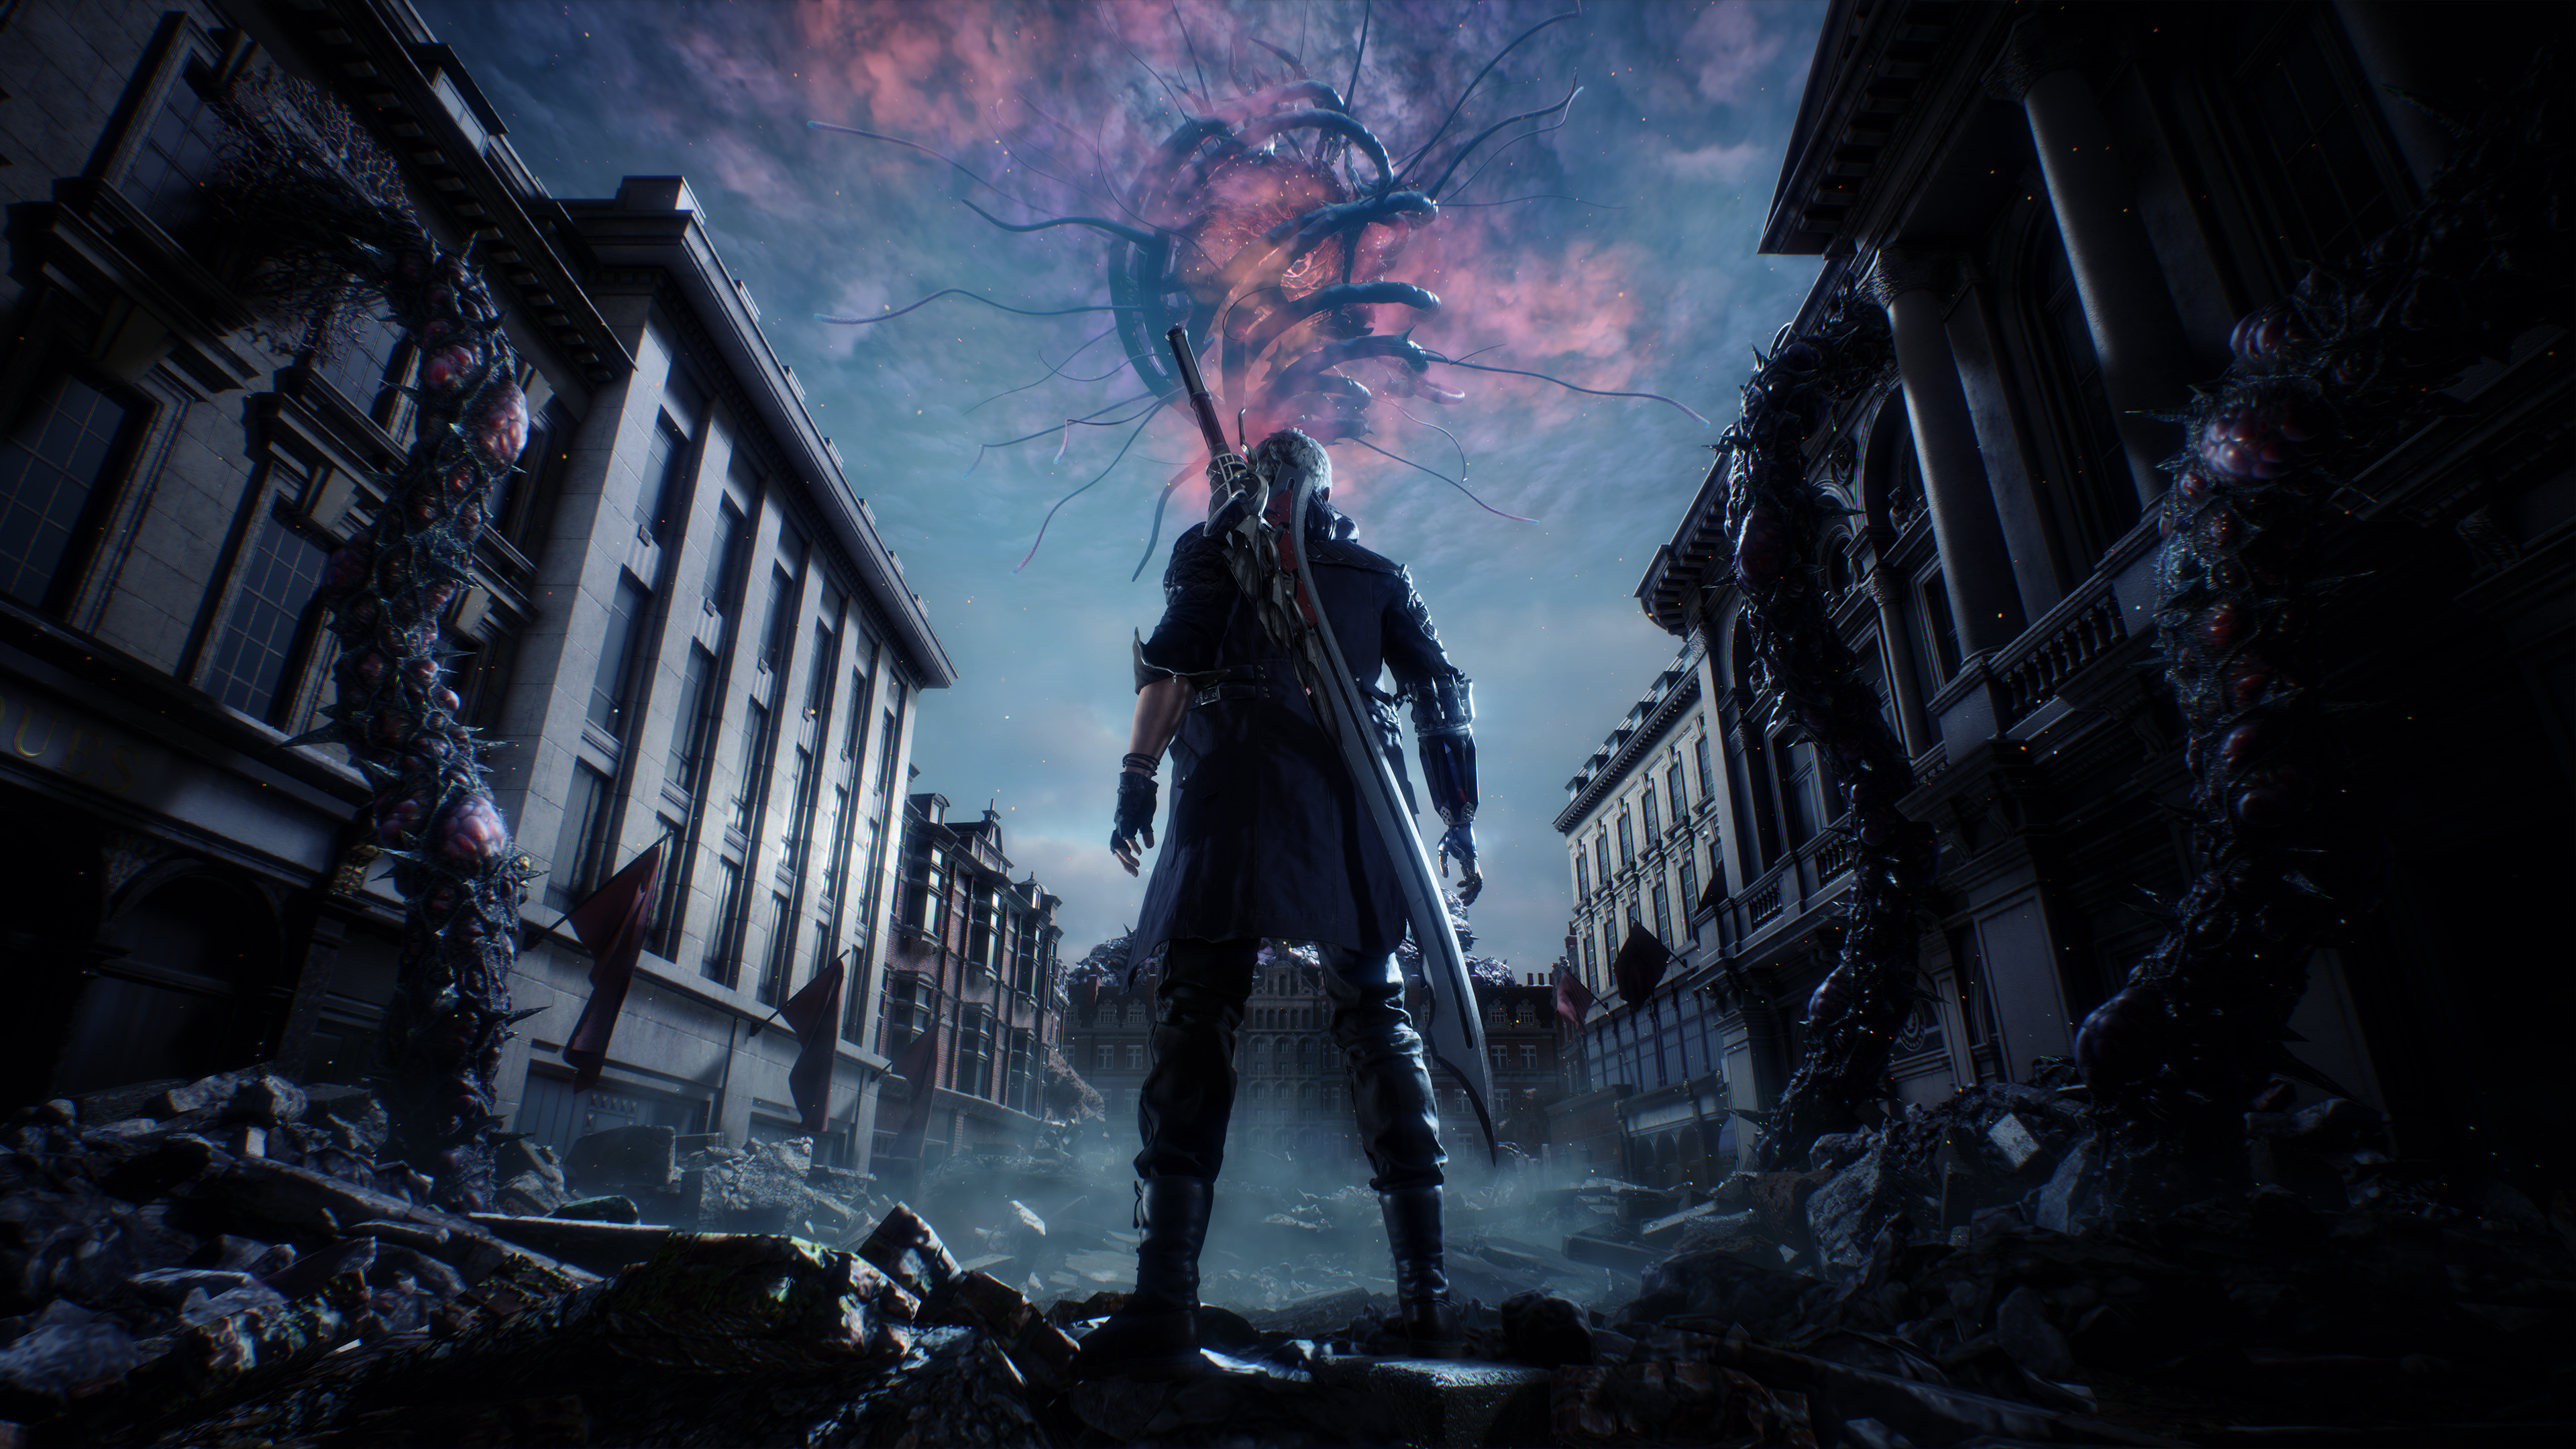 Devil may cry 5 4k ultra hd duvar ka d arka plan 3840x2160 id 928728 wallpaper abyss - Devil may cry hd pics ...